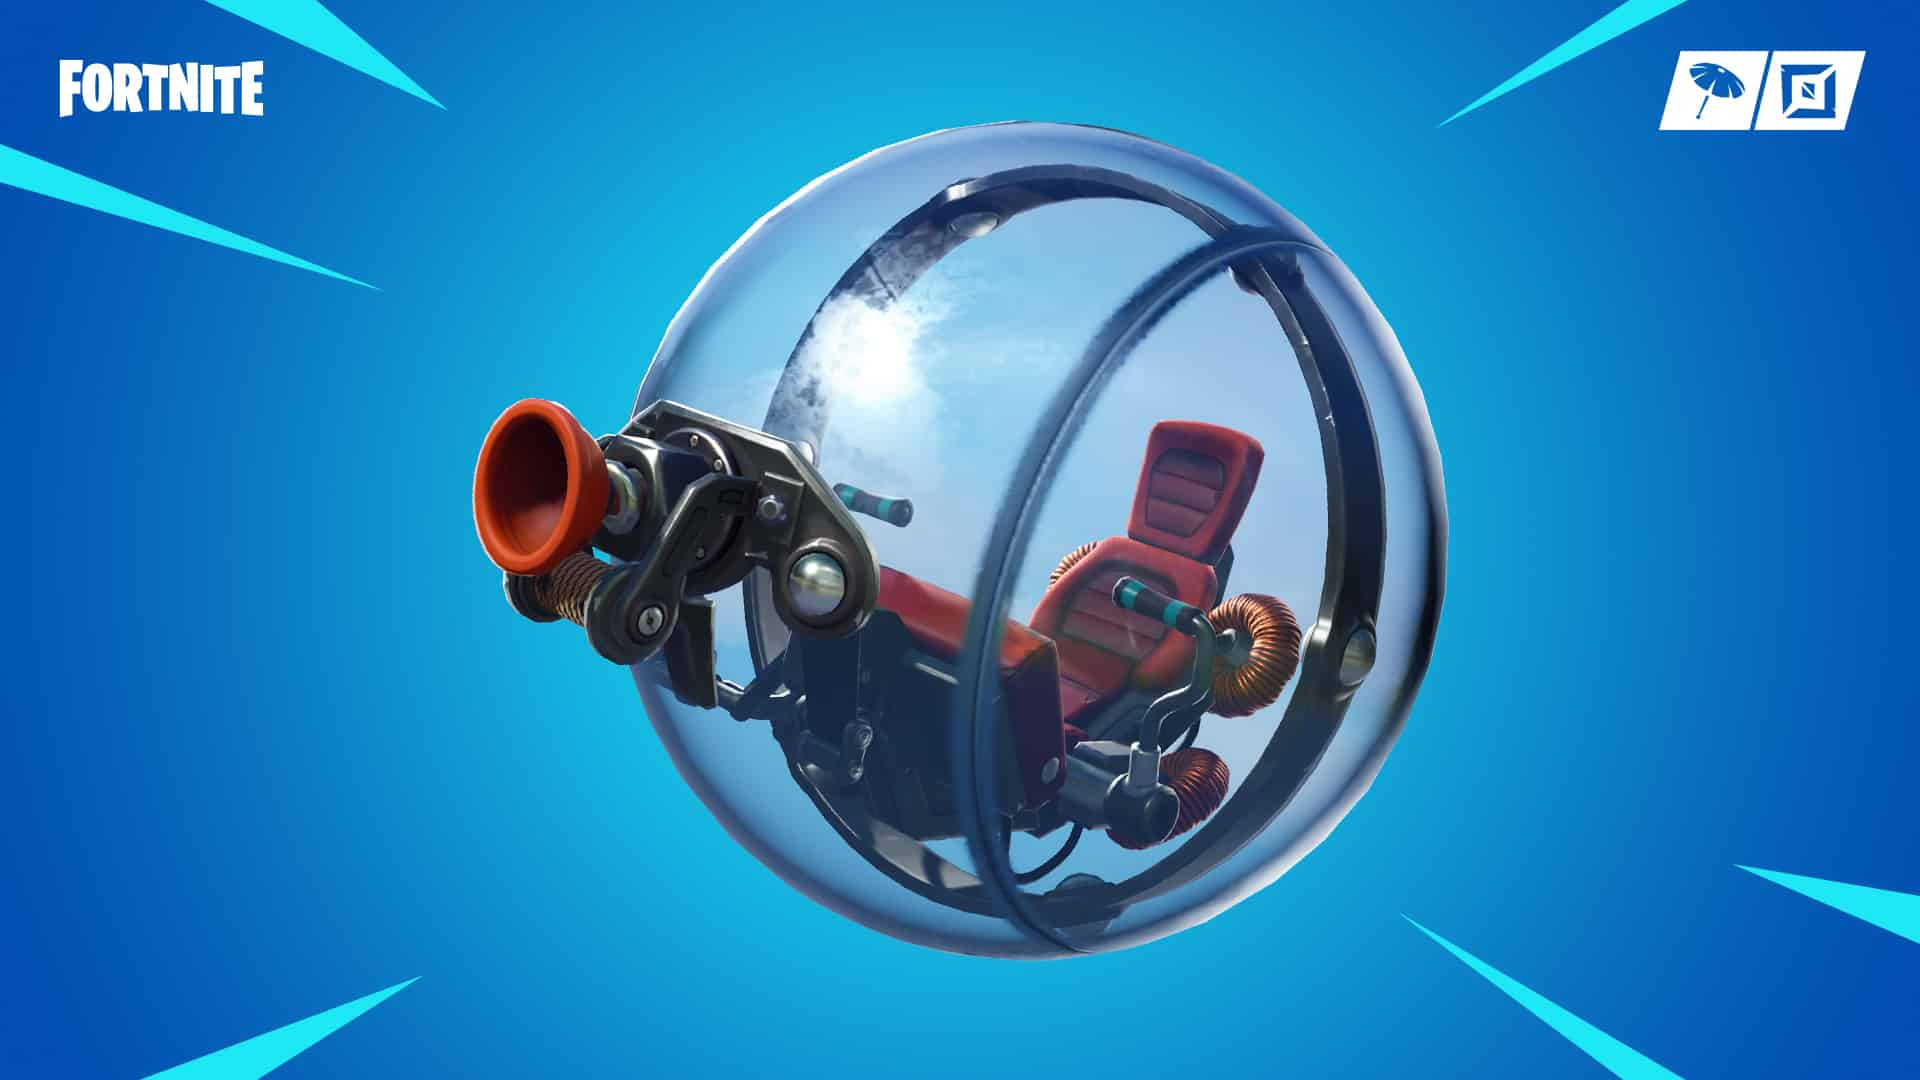 Fortnite 8.10 Patch